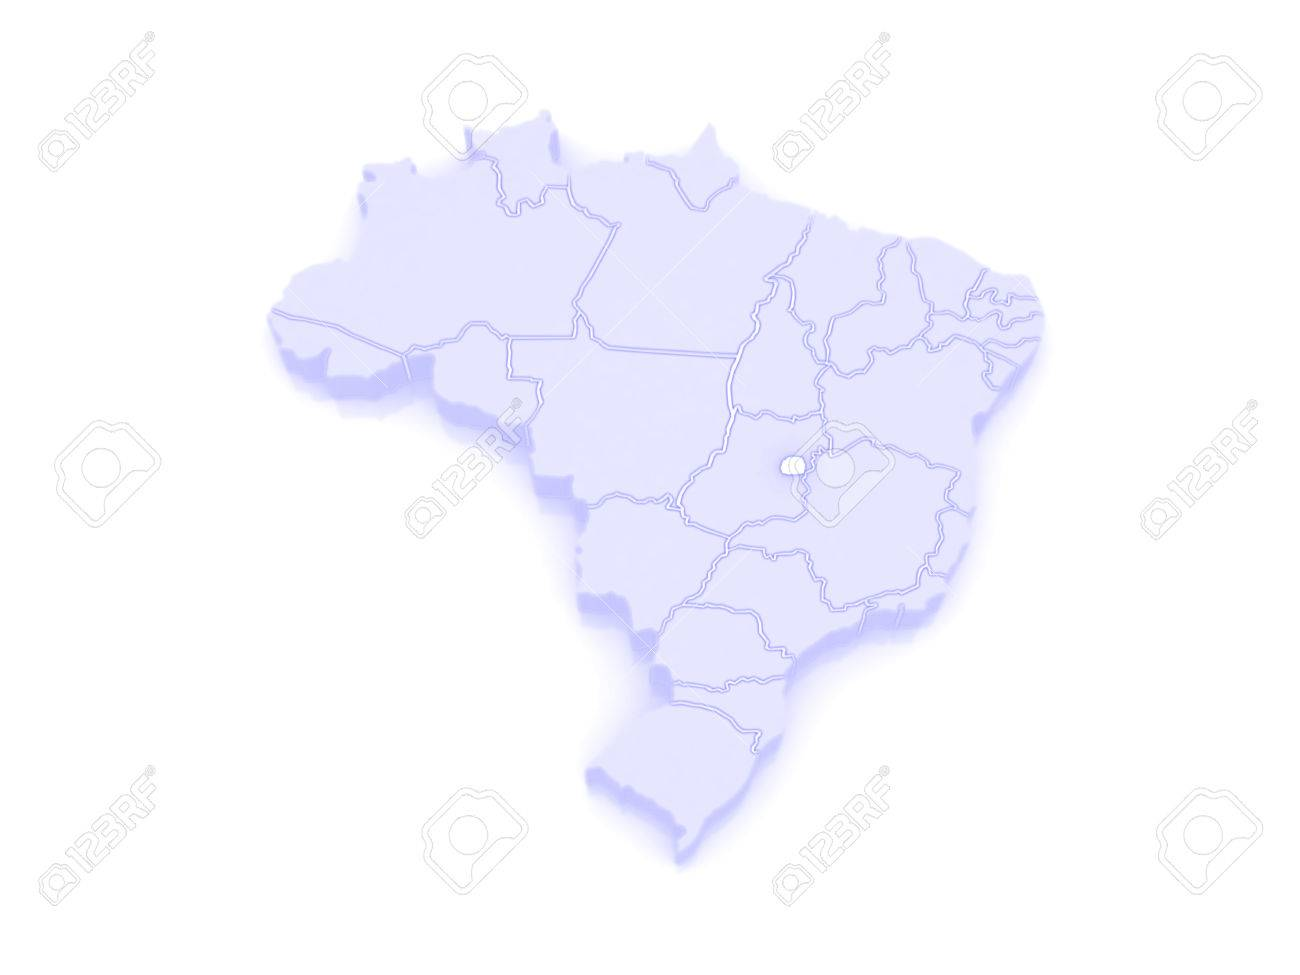 Map Of Brasilia Brazil 3d Stock Photo Picture And Royalty Free